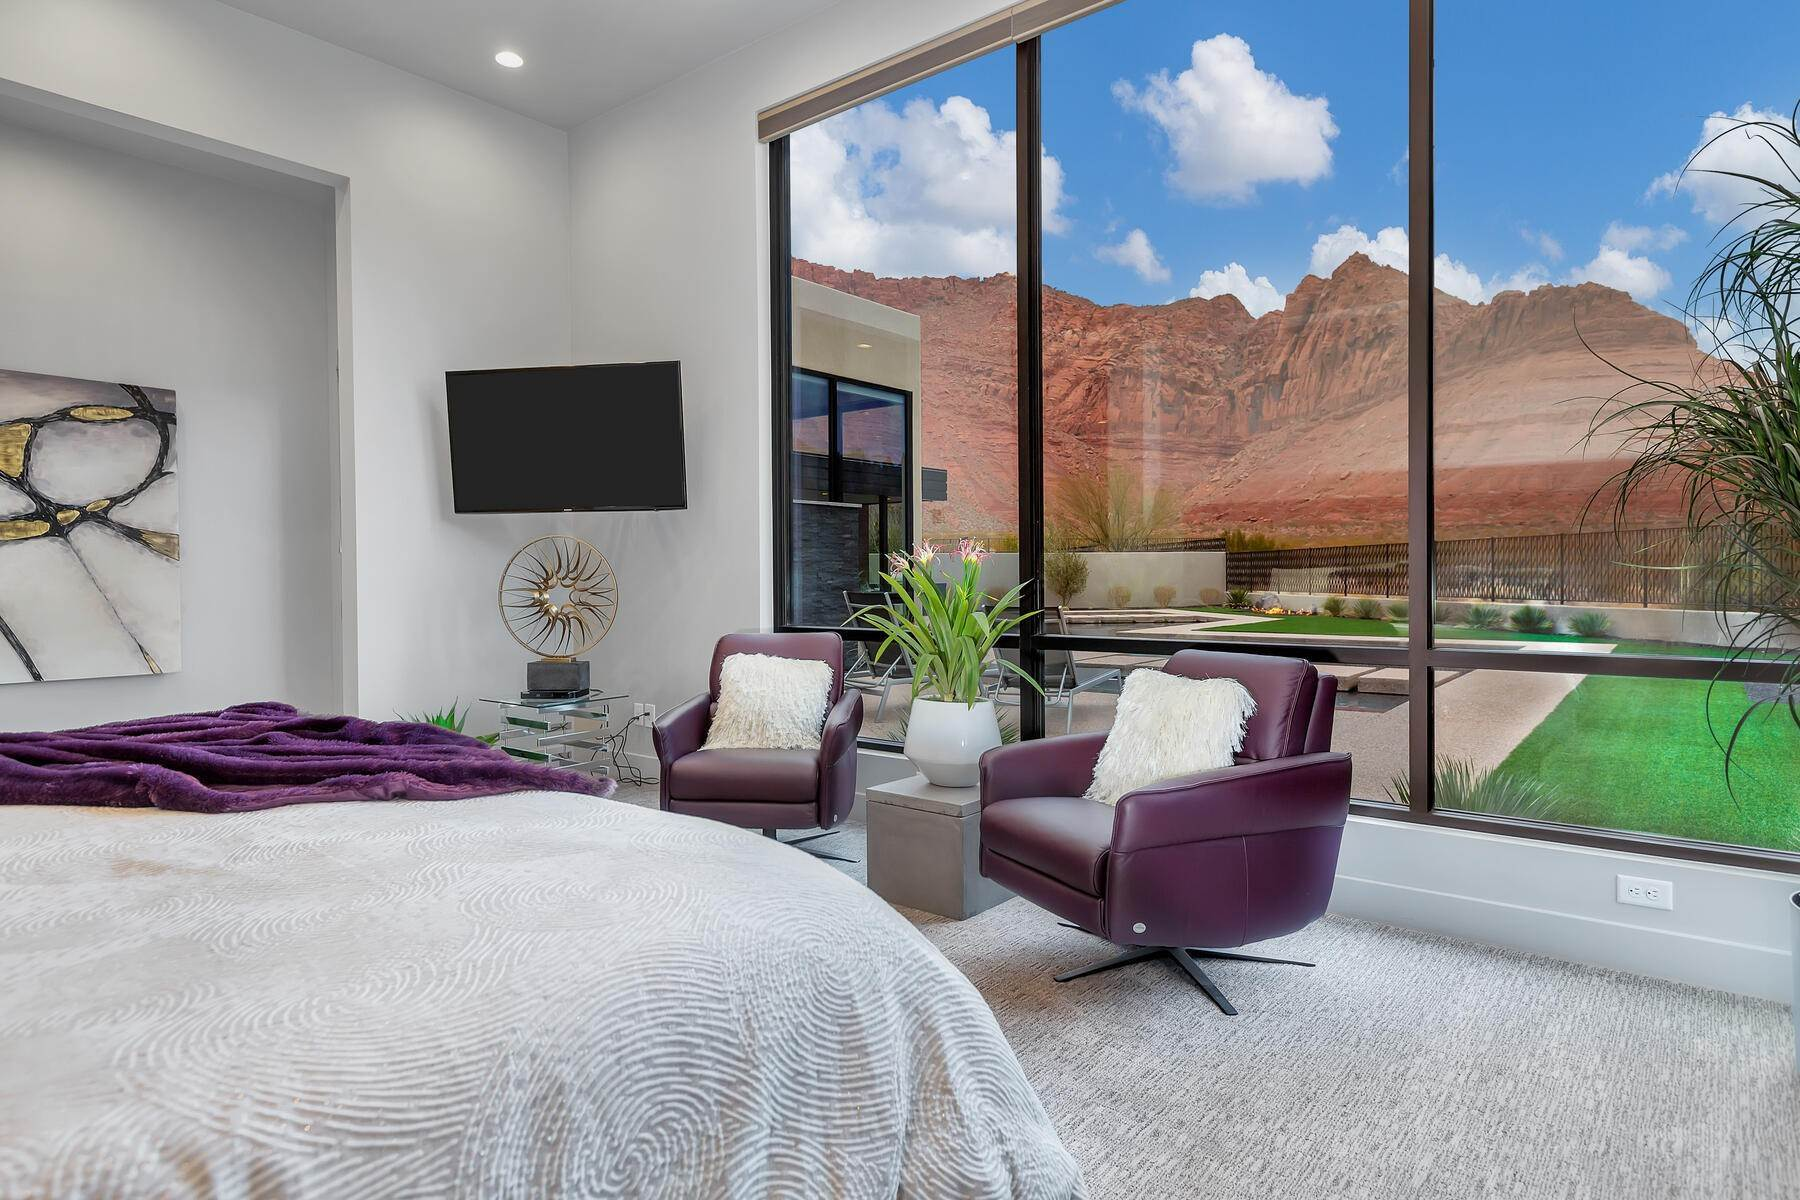 29. Single Family Homes for Sale at Modern Luxury Living In Snow Canyon 362 N Turtle Point Dr Ivins, Utah 84738 United States